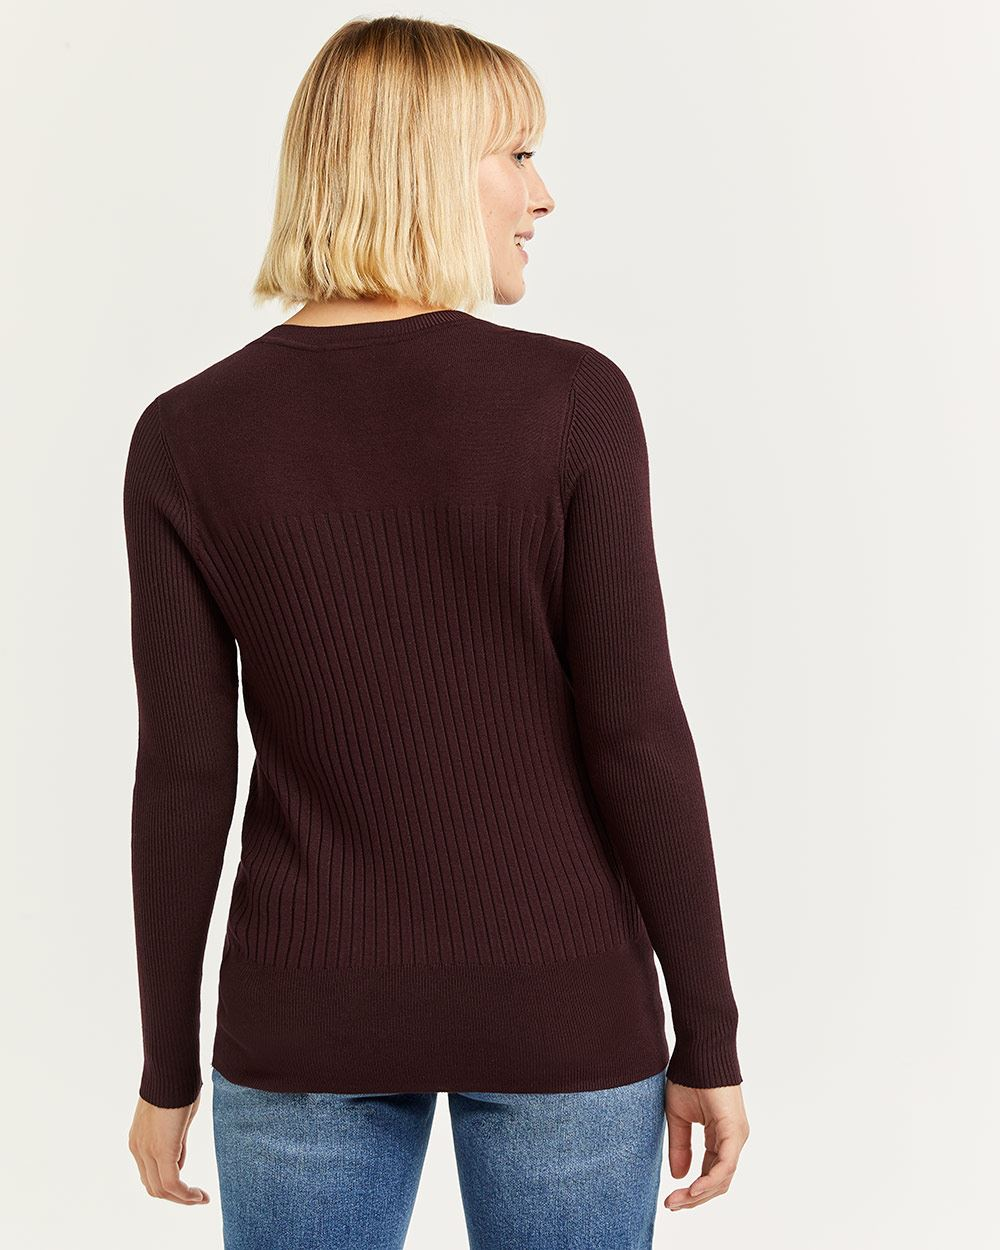 Long Sleeve Crew Neck Tee with Snap Buttons